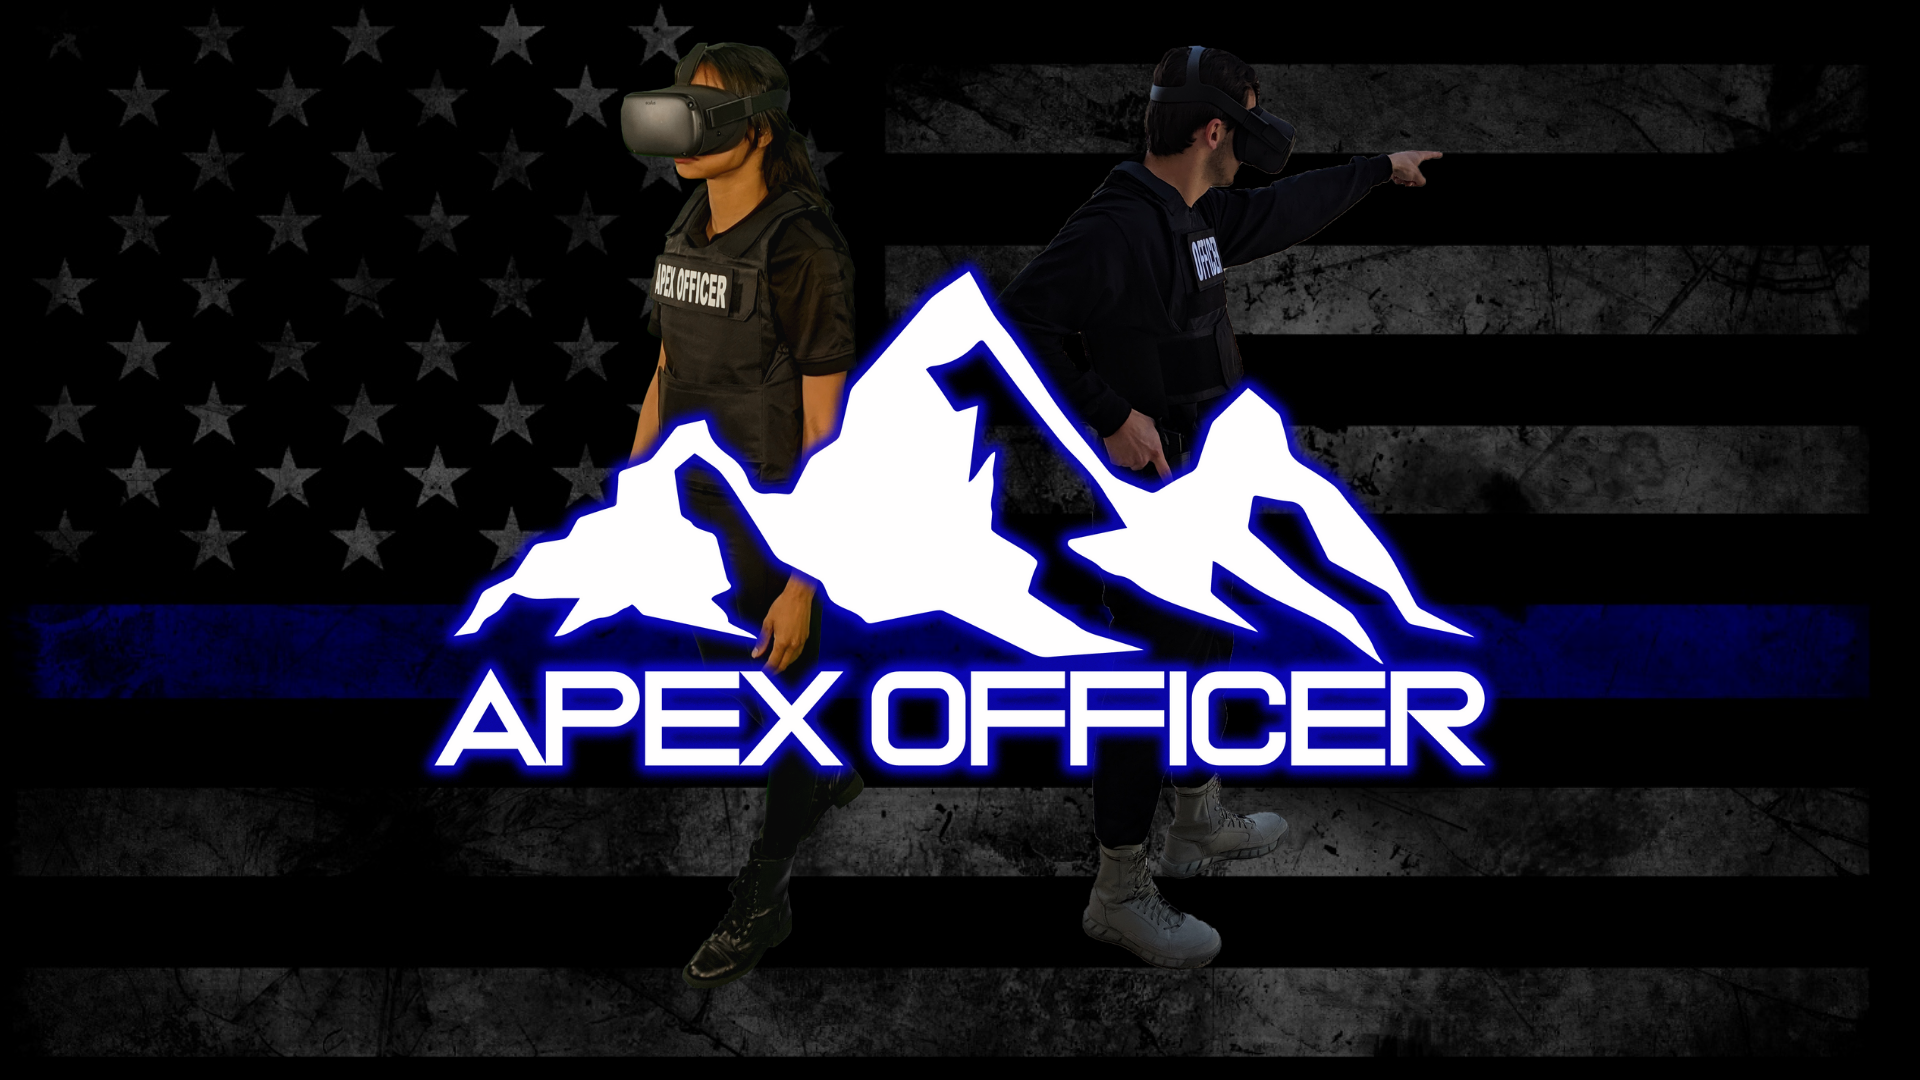 Apex Officer is one of the top places to work in Las Vegas